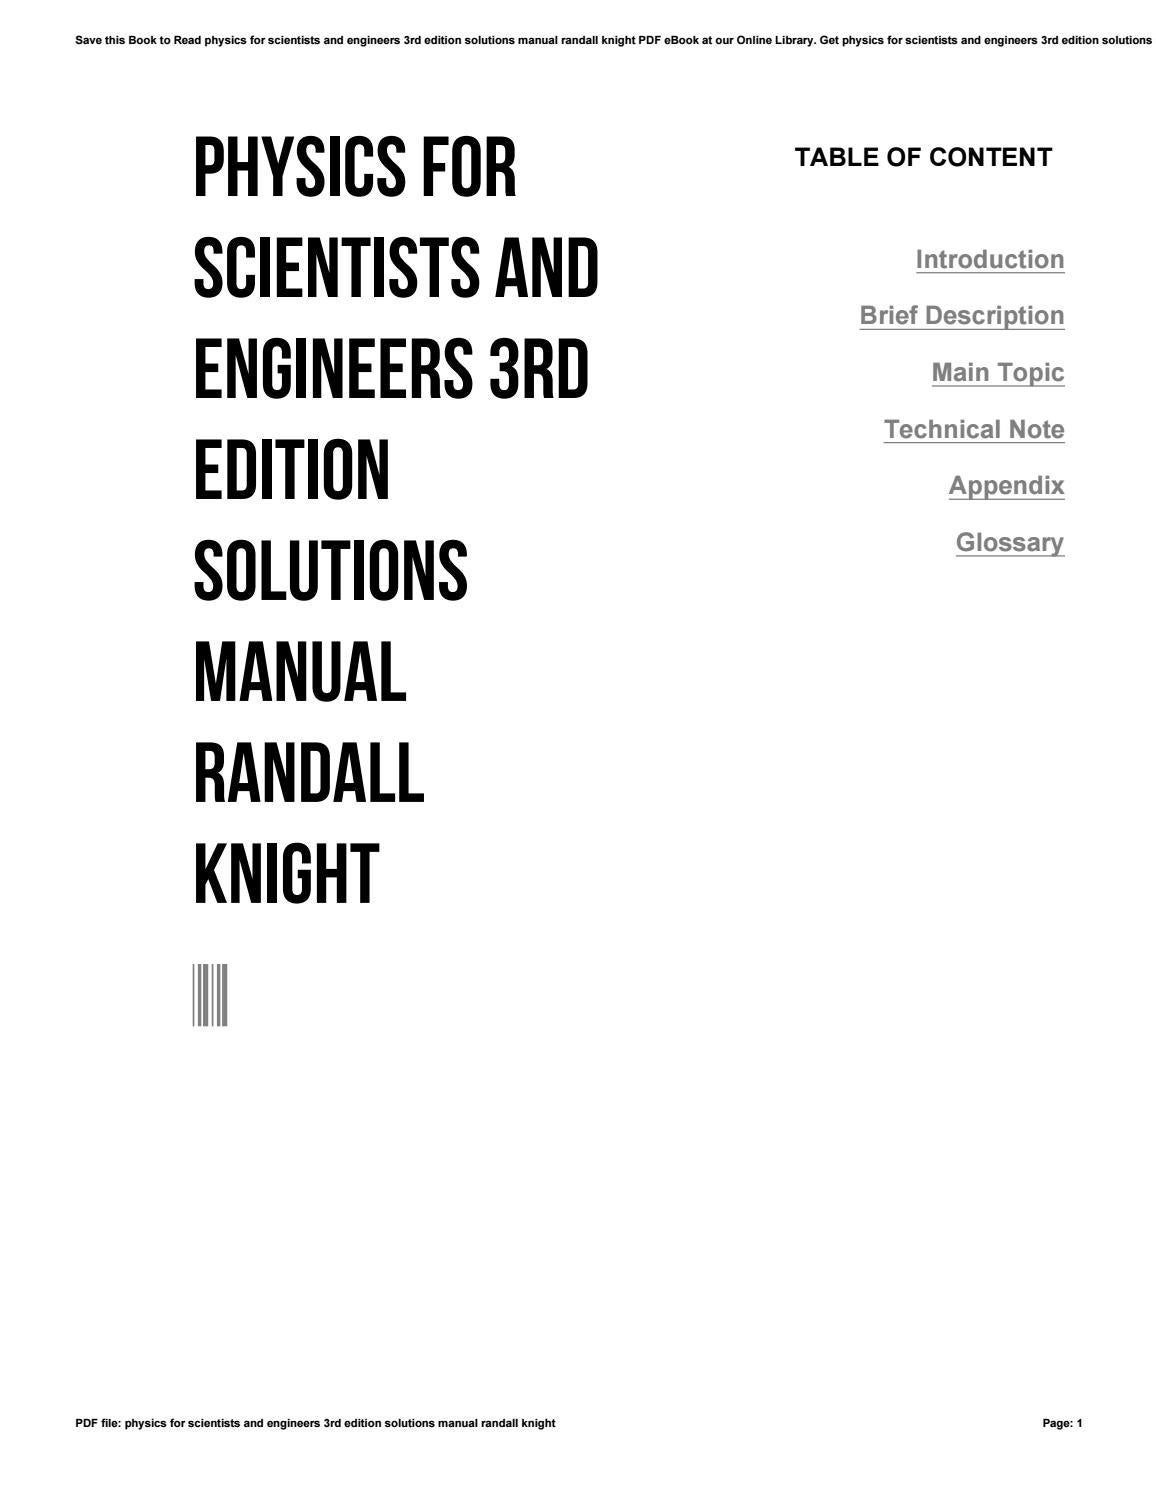 Physics for scientists and engineers 3rd edition solutions manual physics for scientists and engineers 3rd edition solutions manual randall knight by rblx91 issuu fandeluxe Choice Image